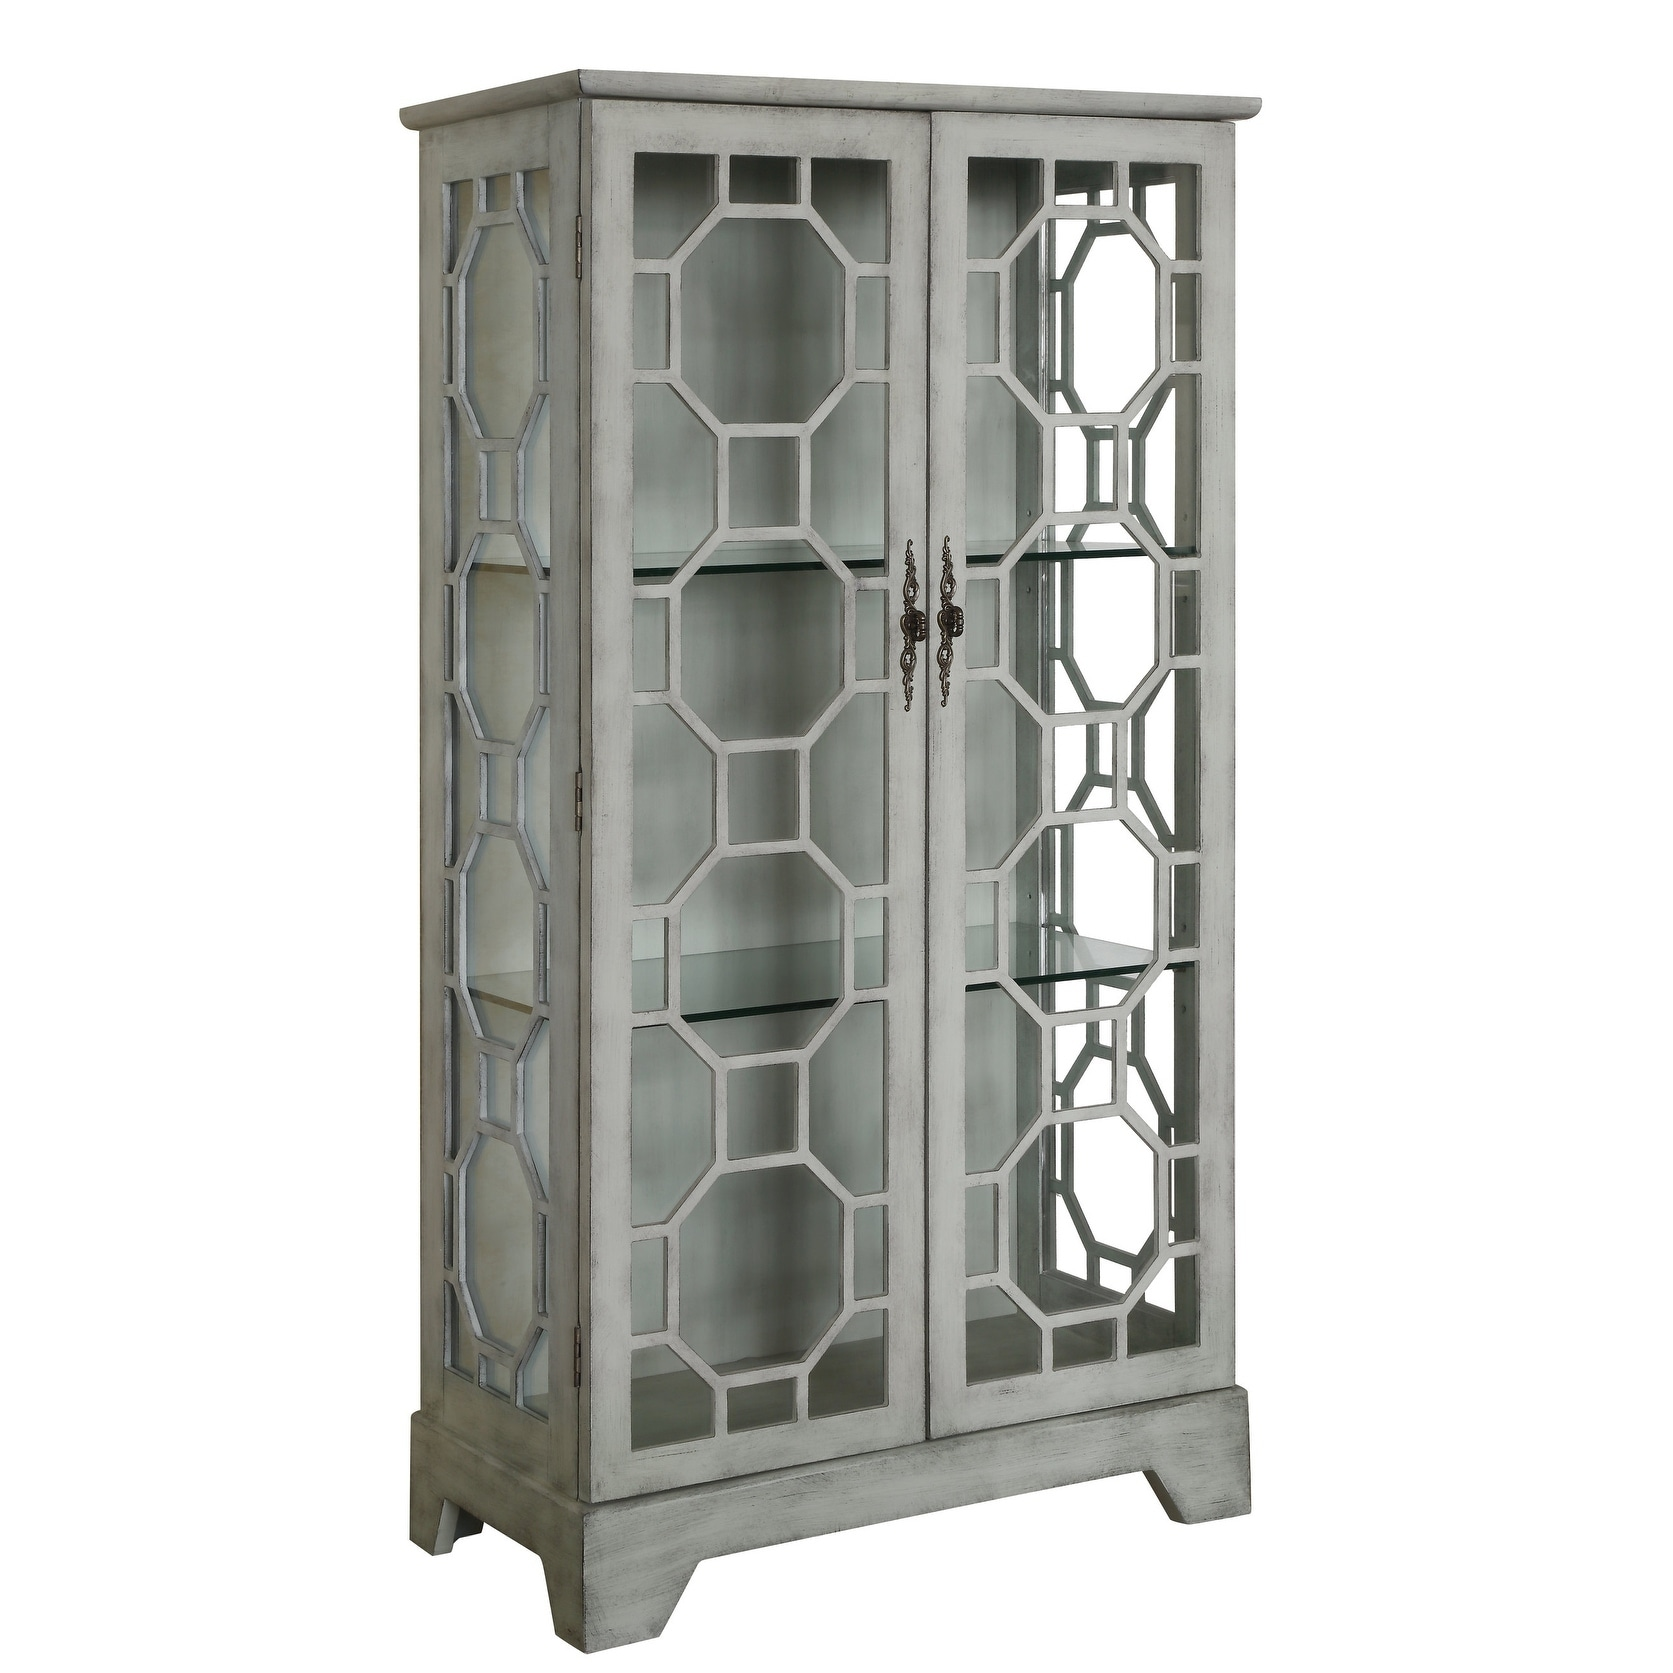 Exceptionnel Shop Evelyn Painted Grey Glass 2 Door Fretwork Curio Cabinet   Free  Shipping Today   Overstock.com   20699289